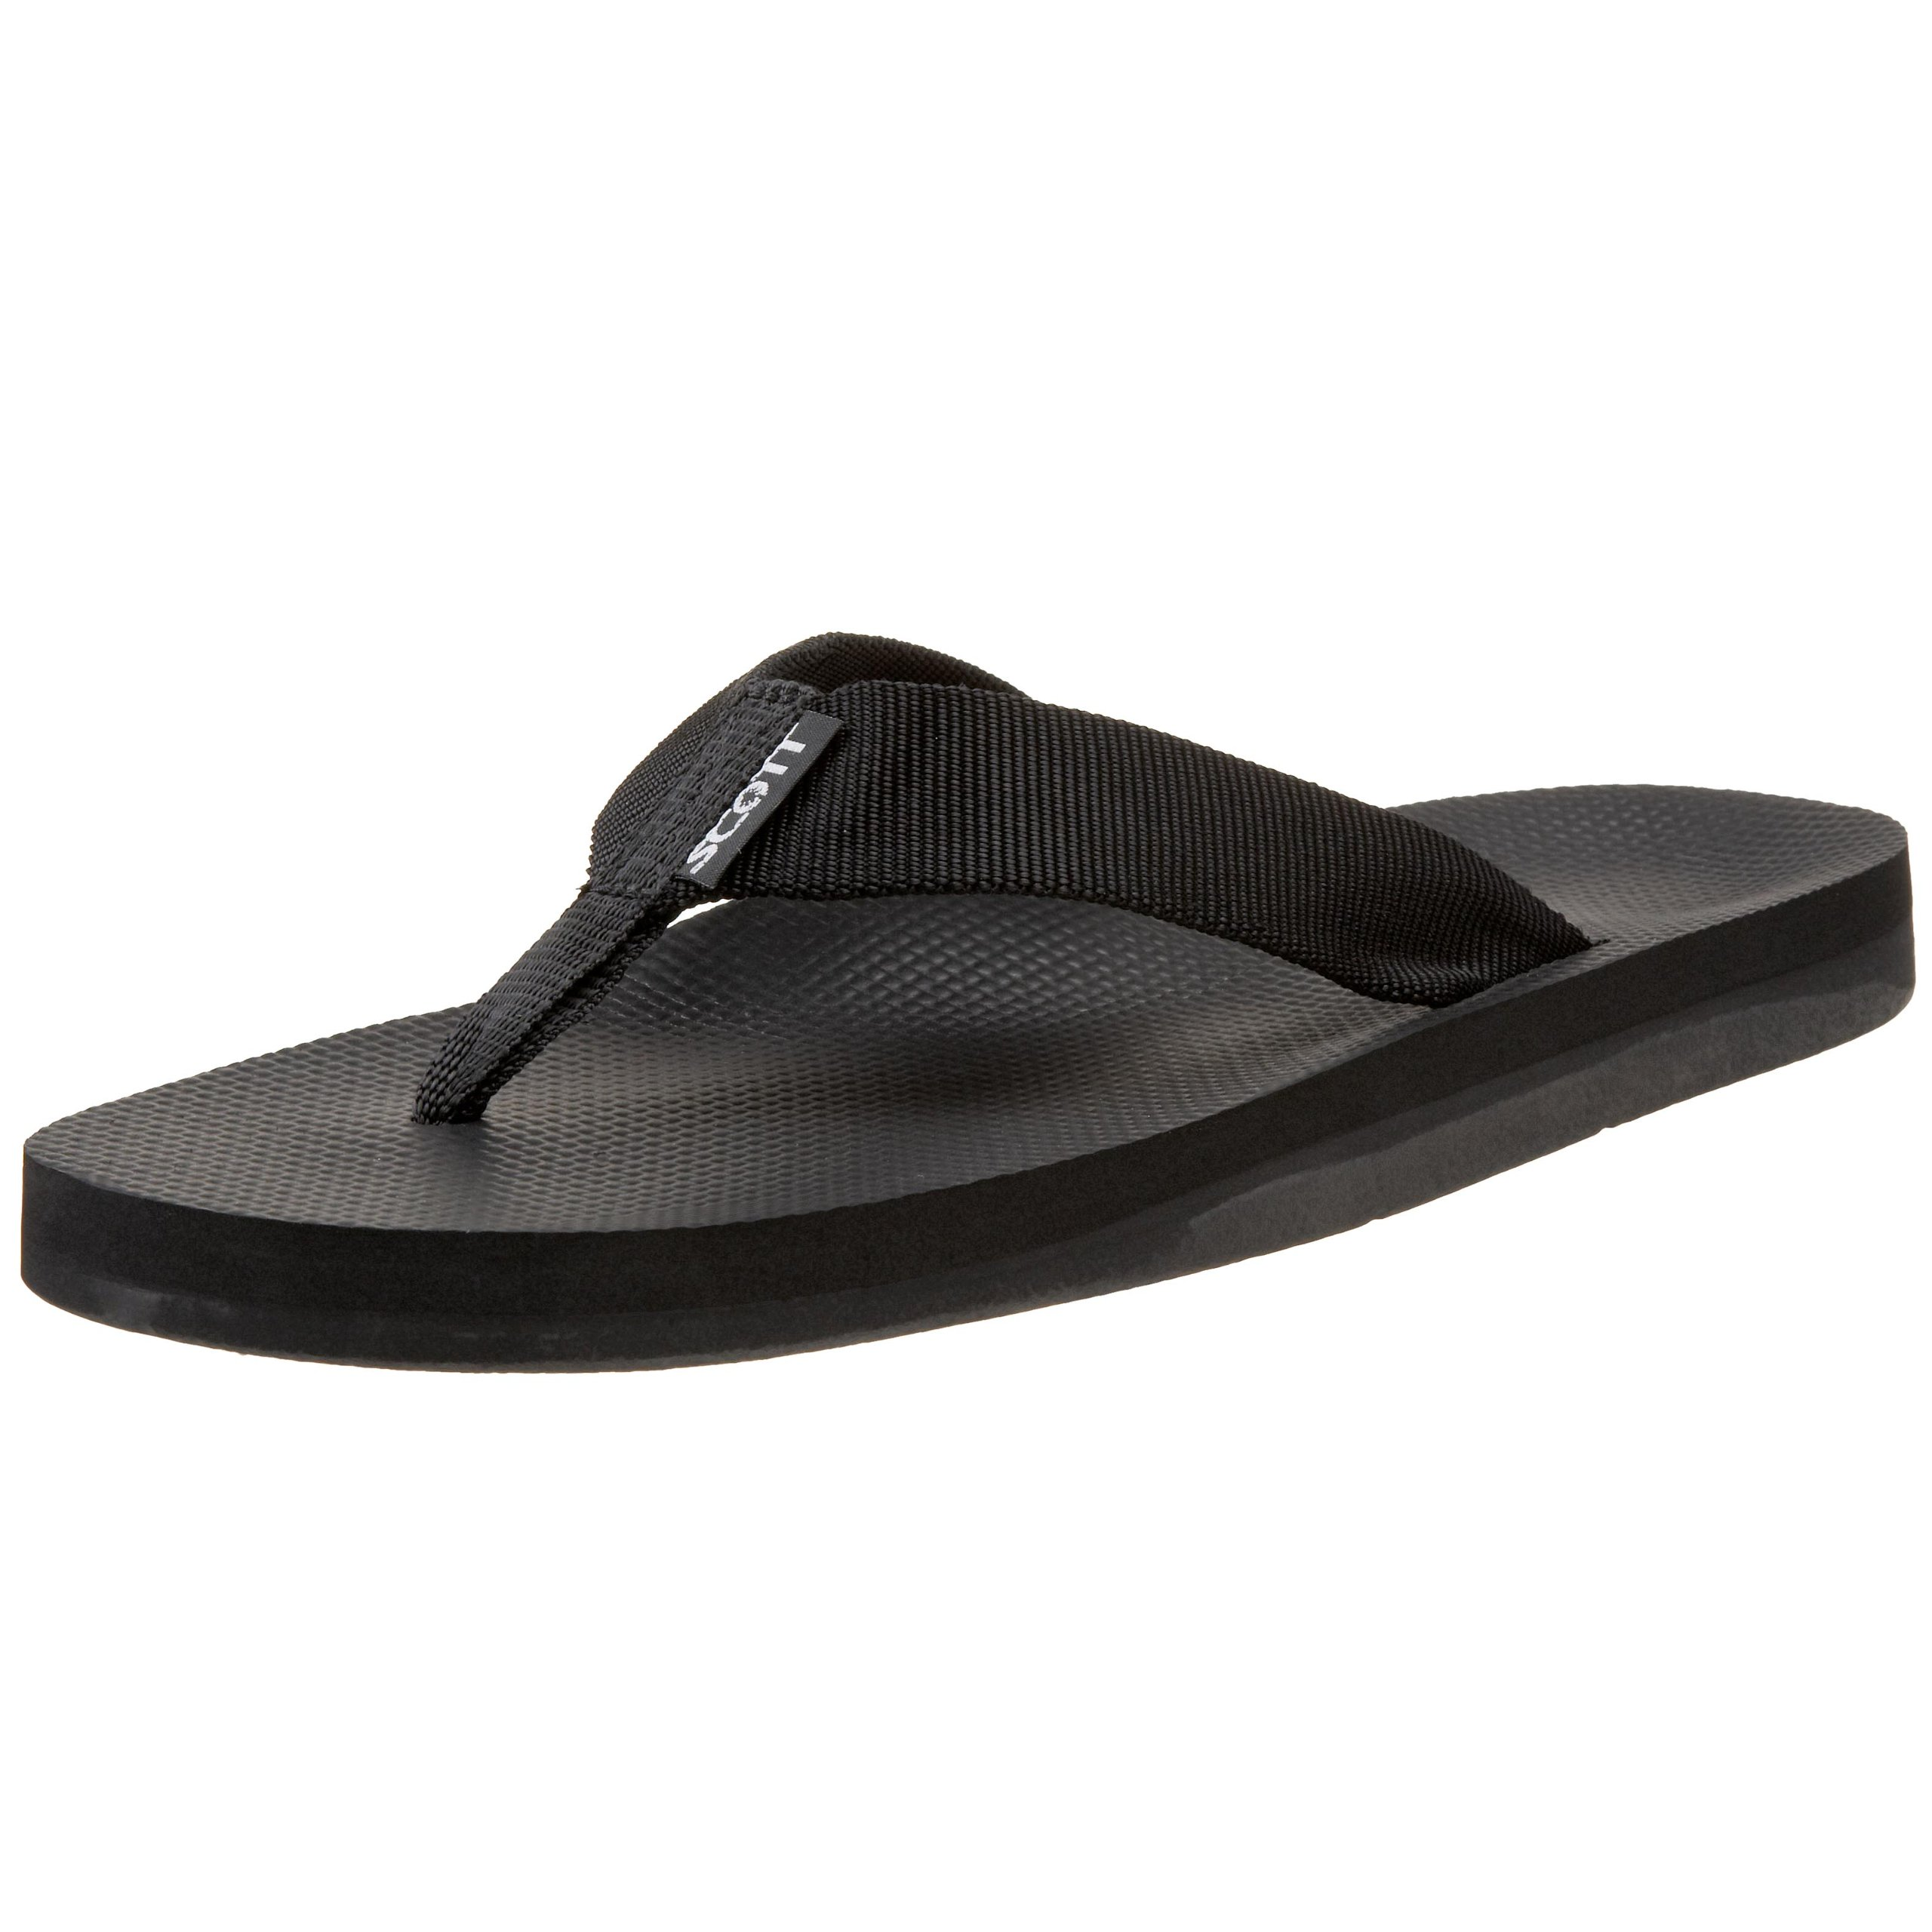 Scott Hawaii Men's Makaha Flip Flop,Black,13 M US